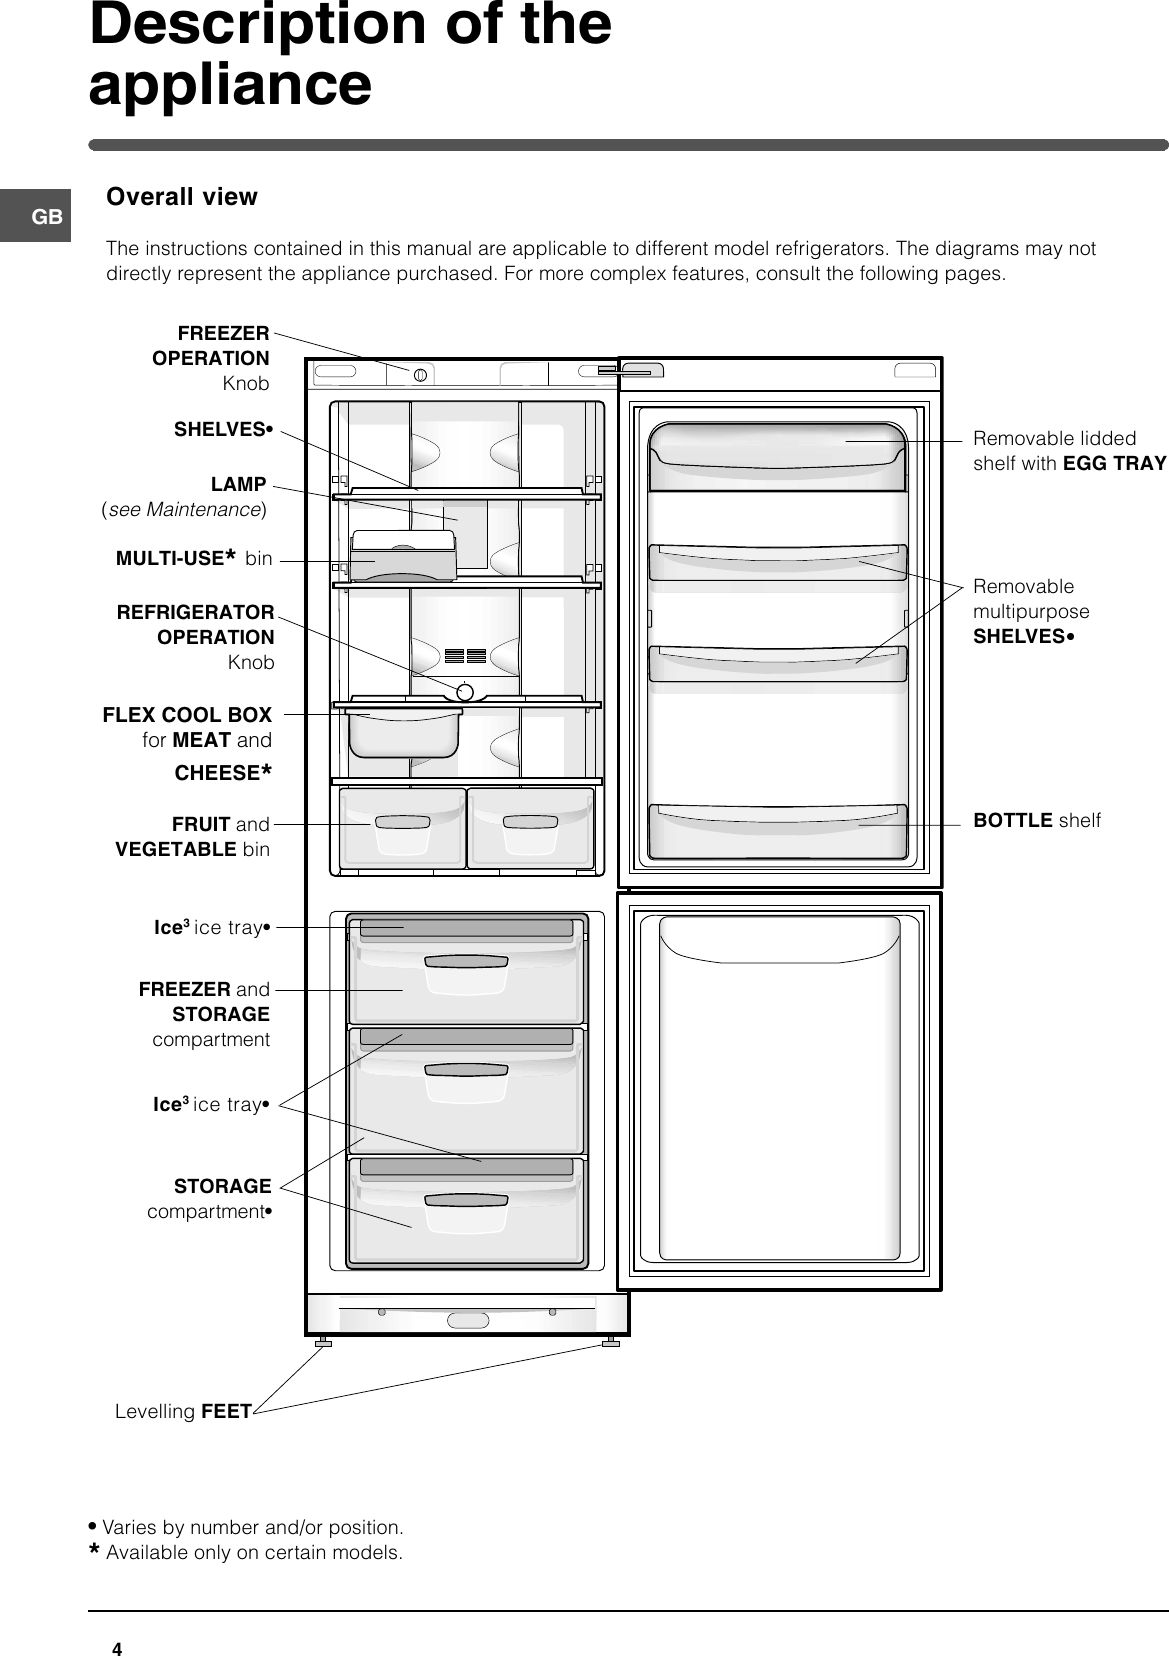 Indesit ban 12 nf operating instructions tr8172gbdoppia porta 180504 page 4 of 12 indesit indesit ban 12 nf operating asfbconference2016 Choice Image